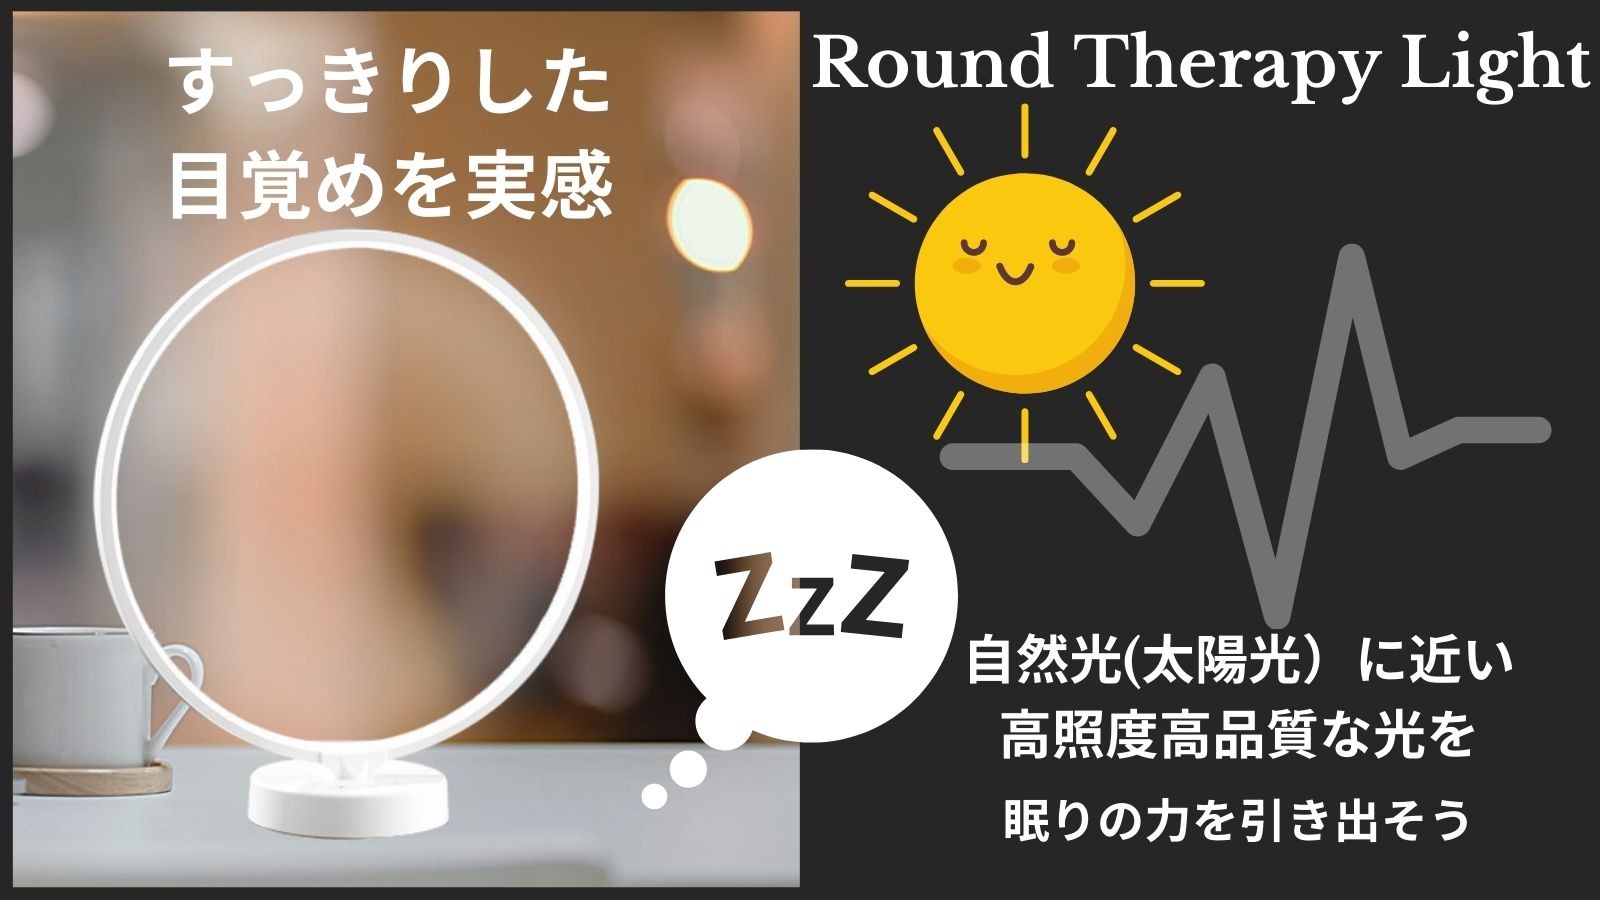 Round Therapy Light (6)